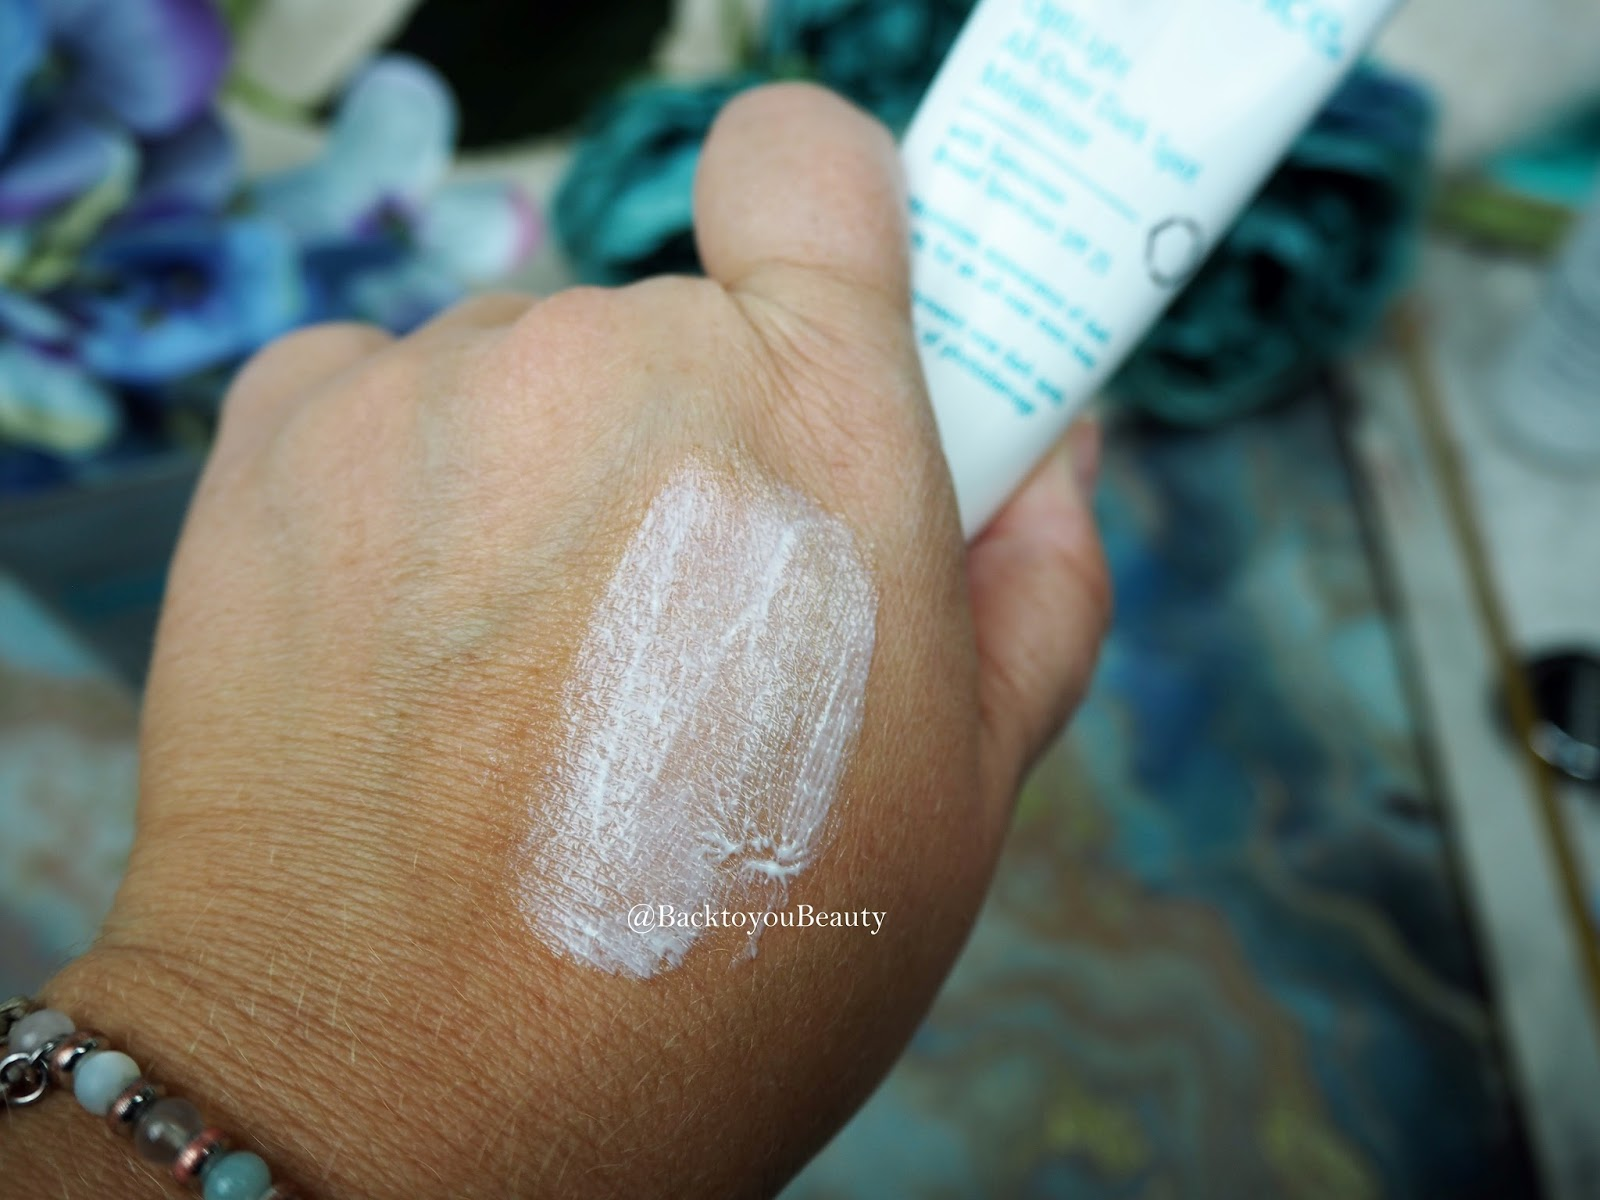 Optilight All-Over Dark Spot Minimizer SPF 25